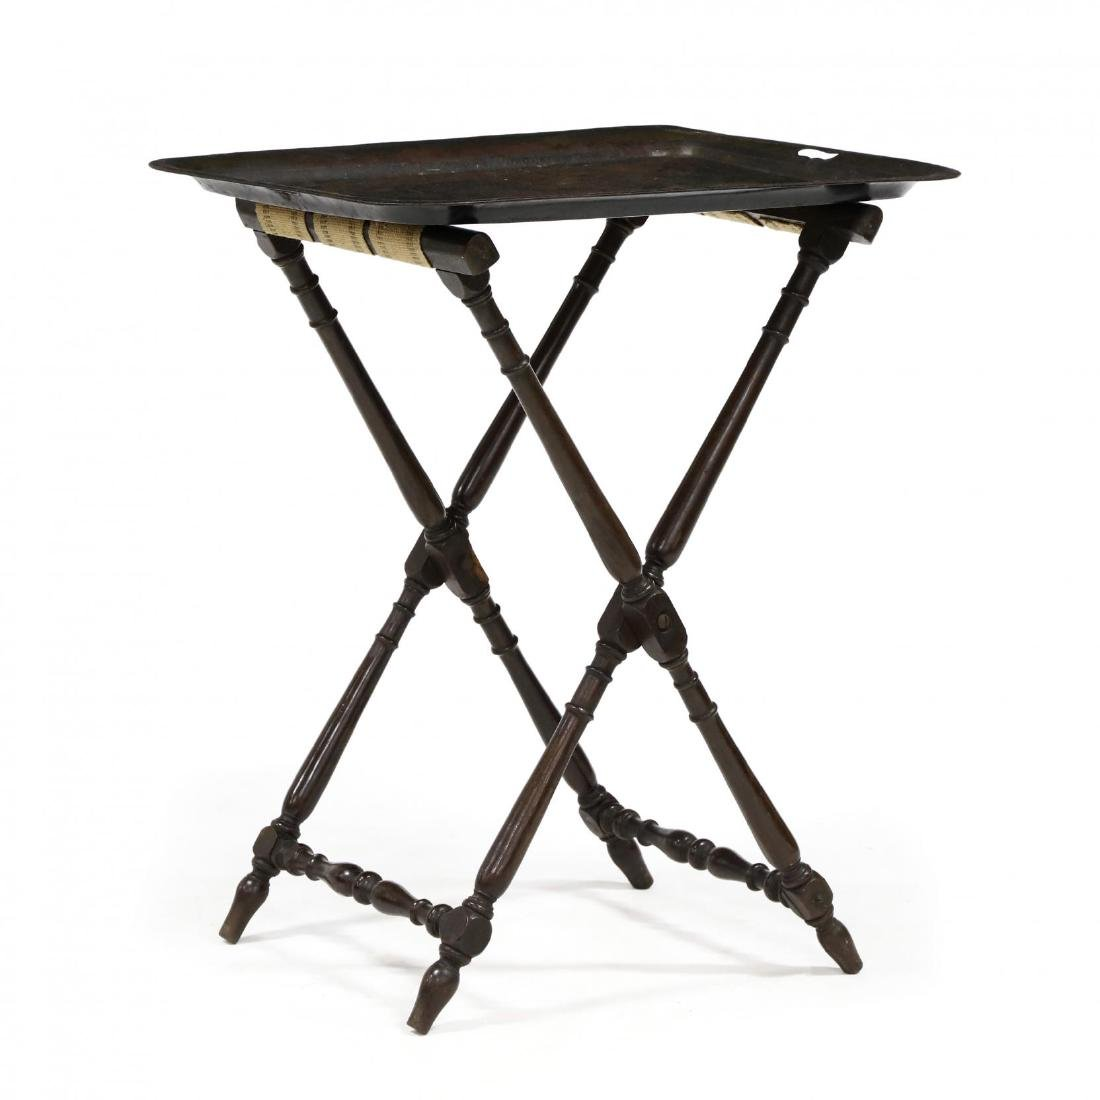 Antique Toleware Tray On Tall Stand